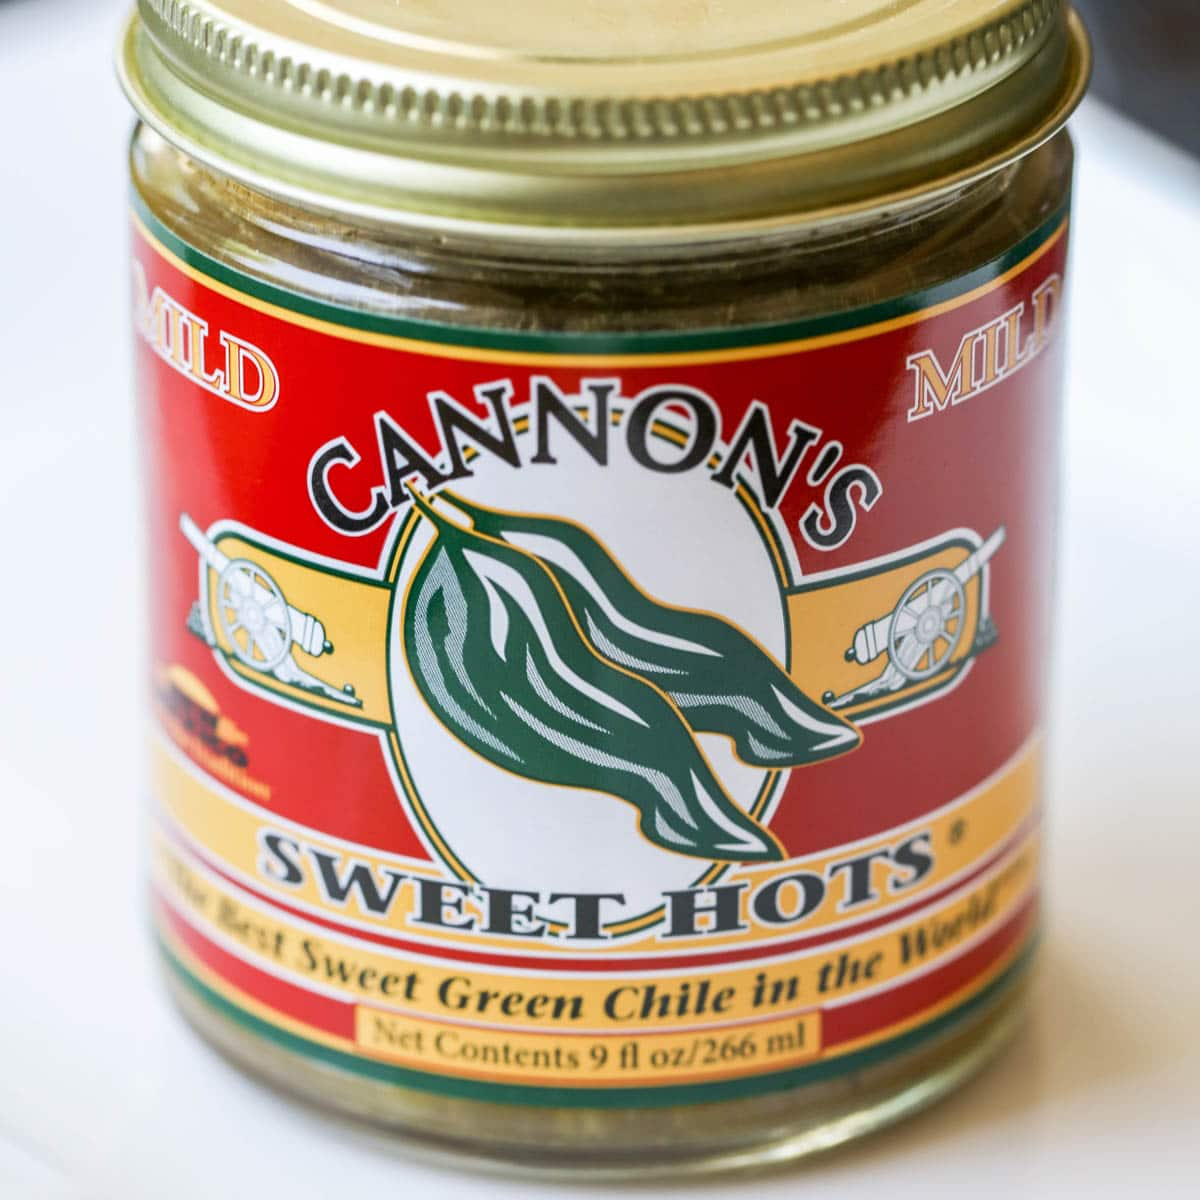 Cannon's sweet green chile in a can